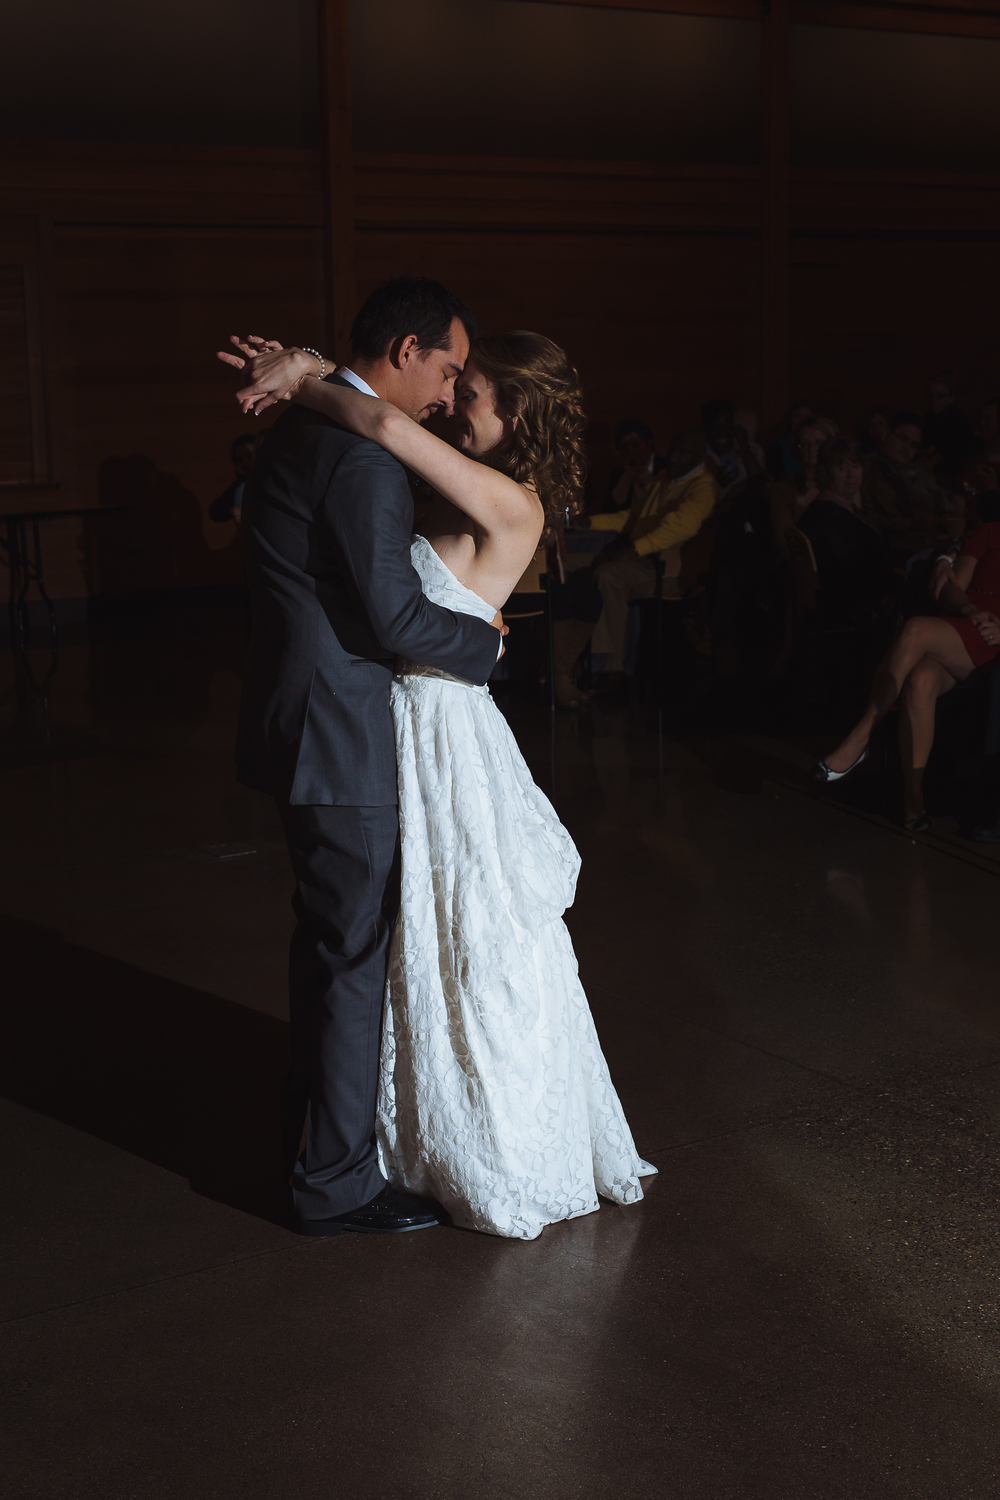 He sang the entire song to her on their first dance, I may have been crying behind the camera...